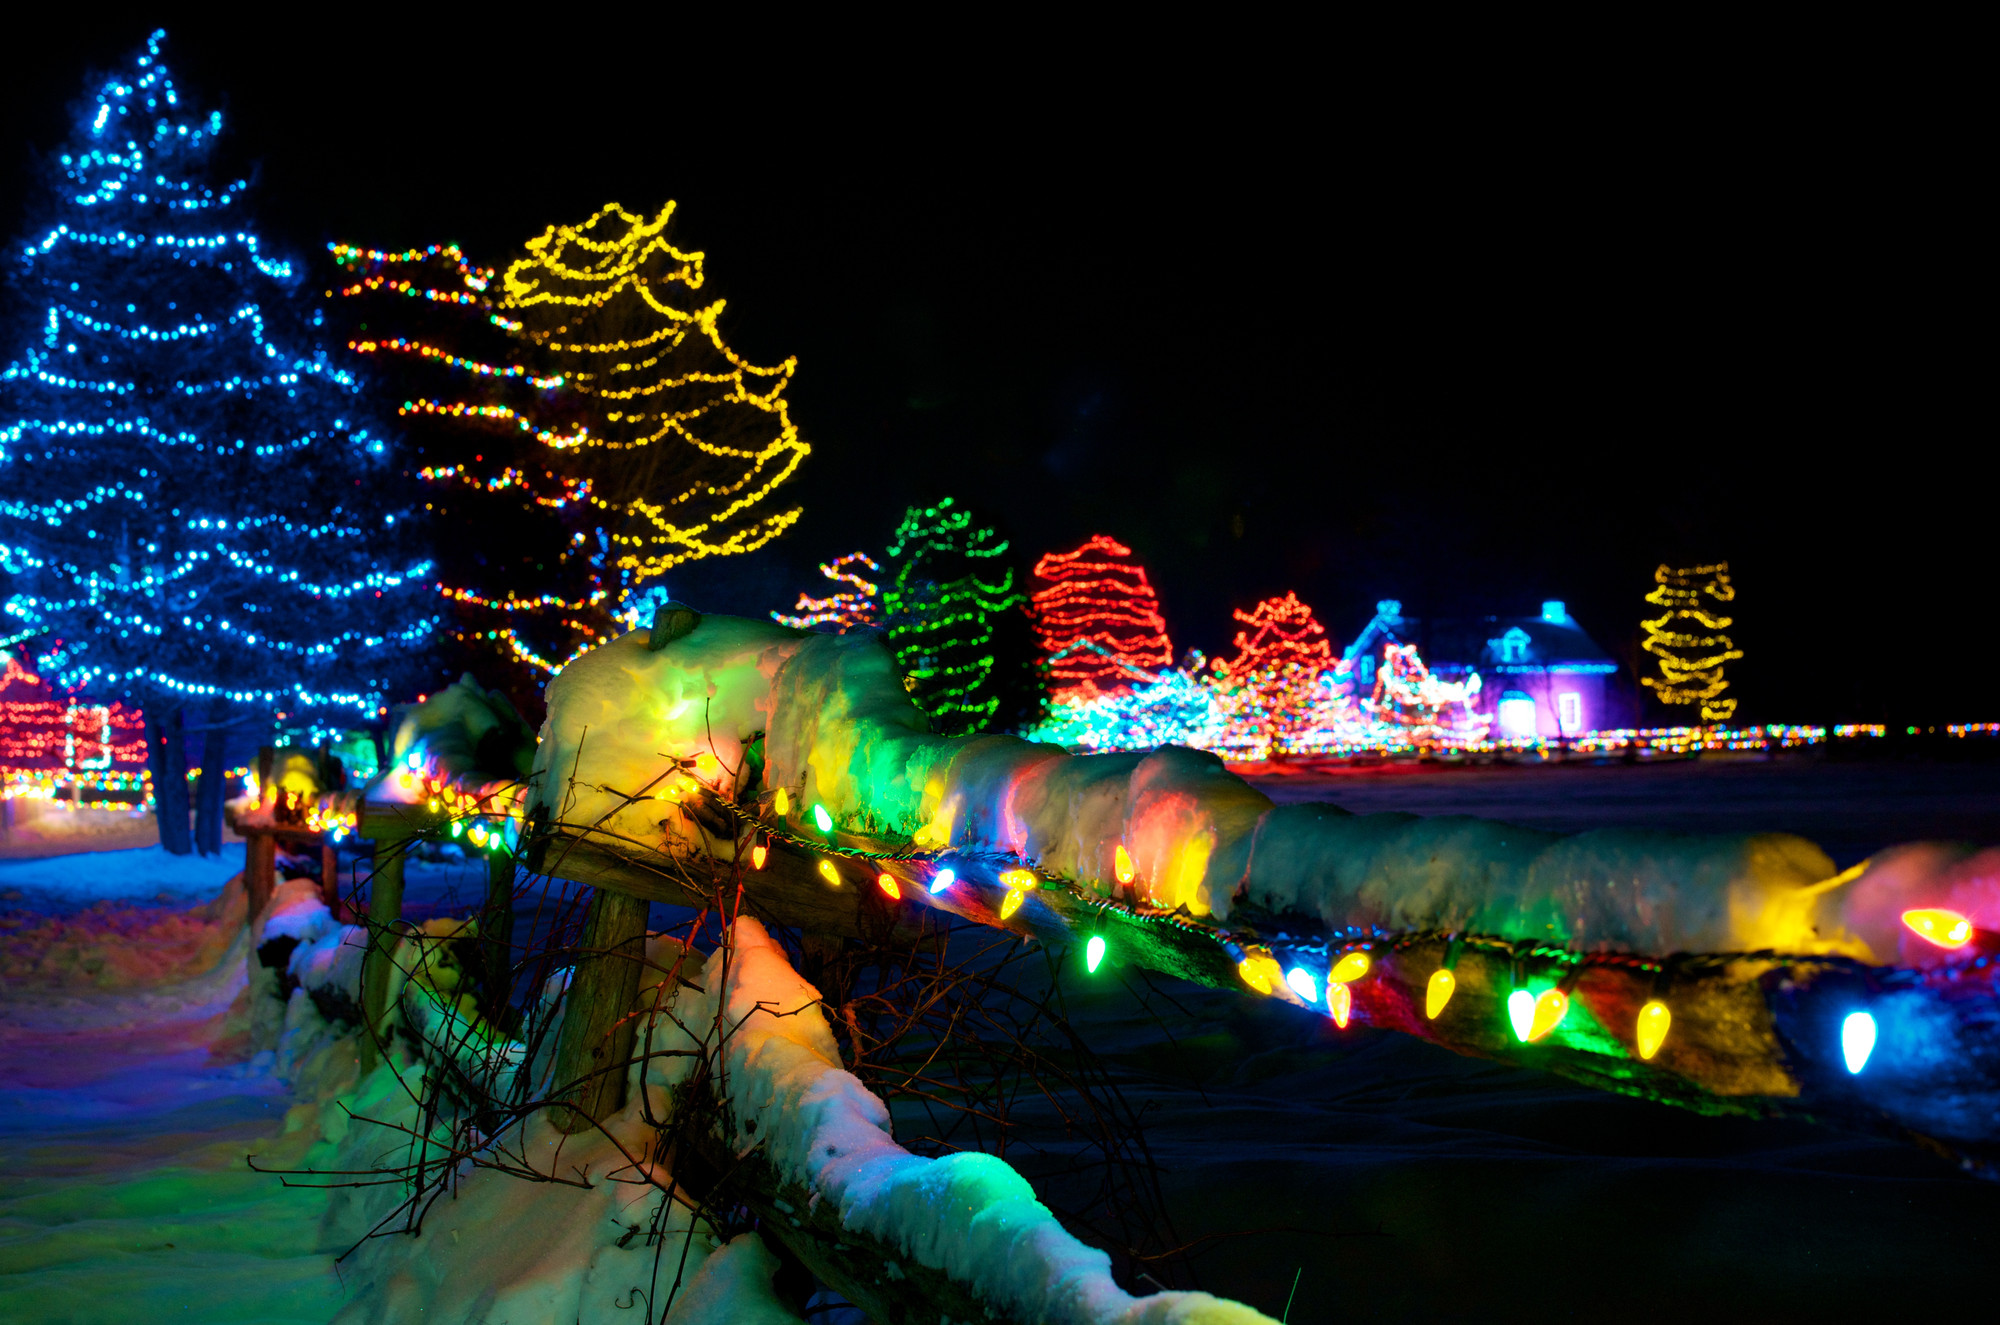 Upper Canada Village's heritage buildings, trees and fences will be lit up for the 14tannh ual Alight at Night festival this December and January. (The Great Waterway)